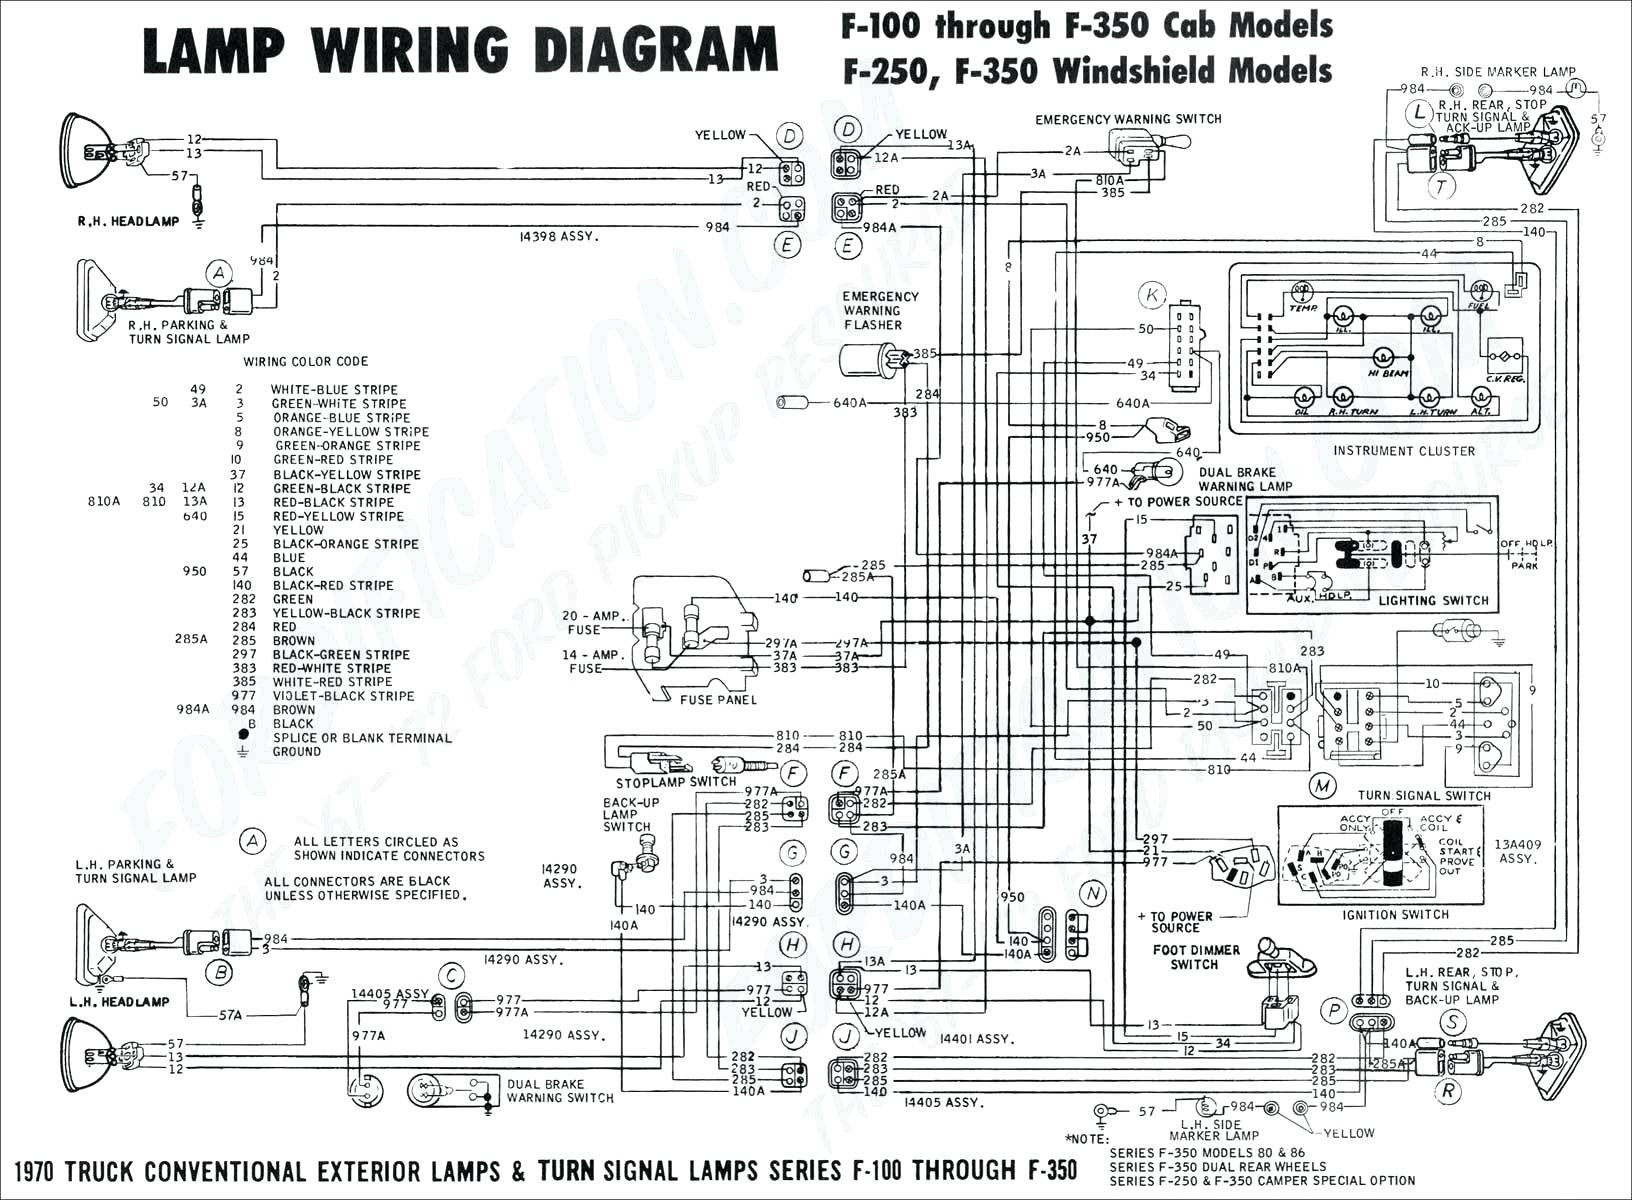 80A3 2002 Jeep Fuse Diagram | Ebook Databases